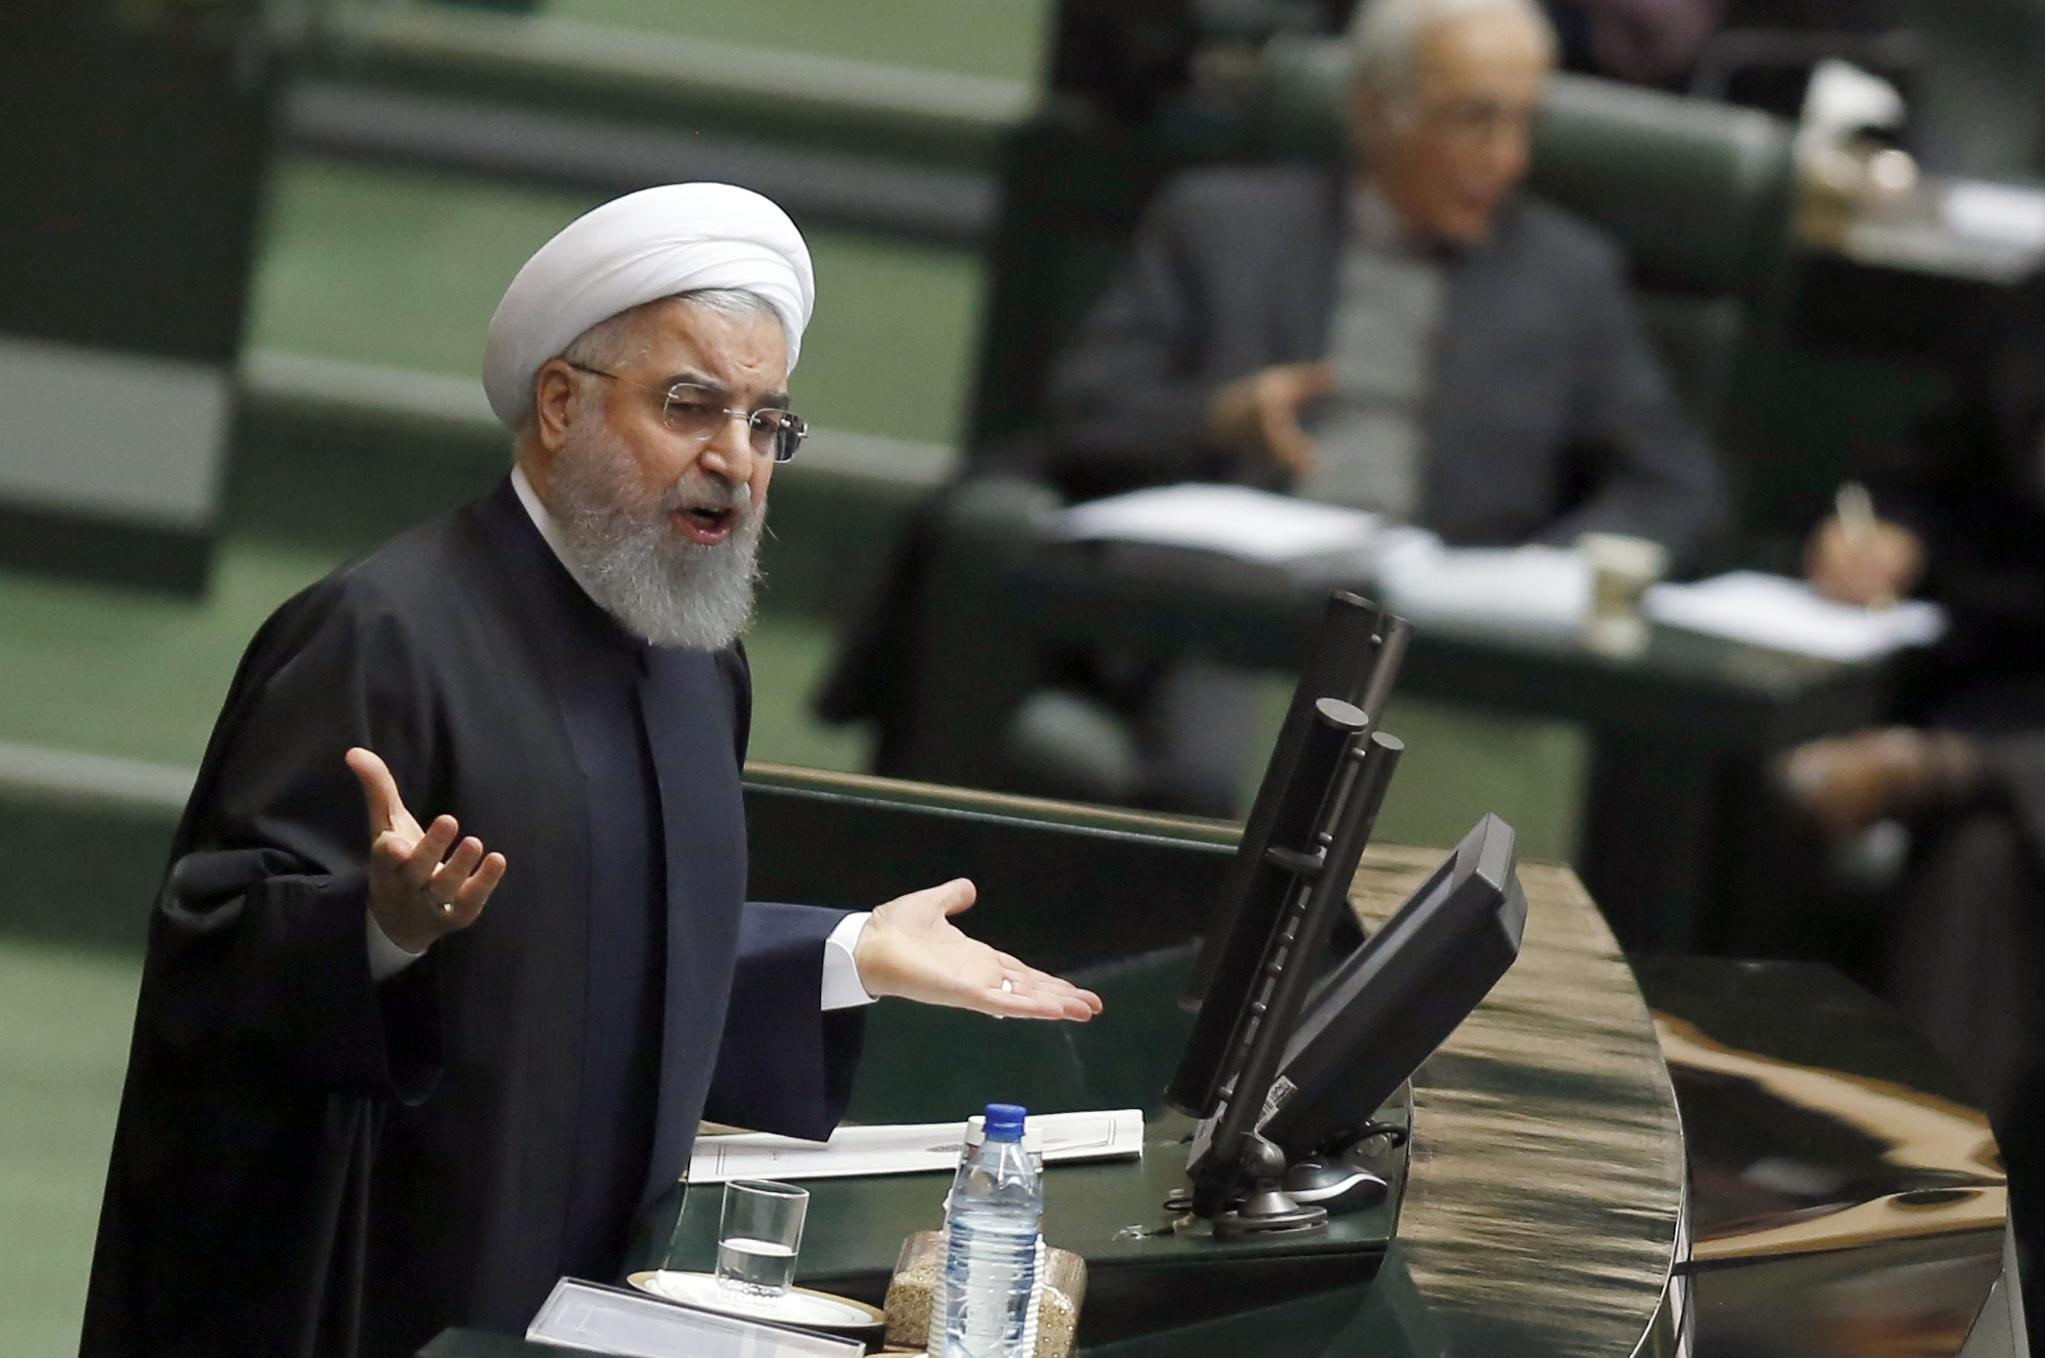 Iran's President Hassan Rouhani presents to the parliament his budget for 2018-2019 on December 10, 2017, in Tehran. / AFP PHOTO / ATTA KENARE        (Photo credit should read ATTA KENARE/AFP/Getty Images)